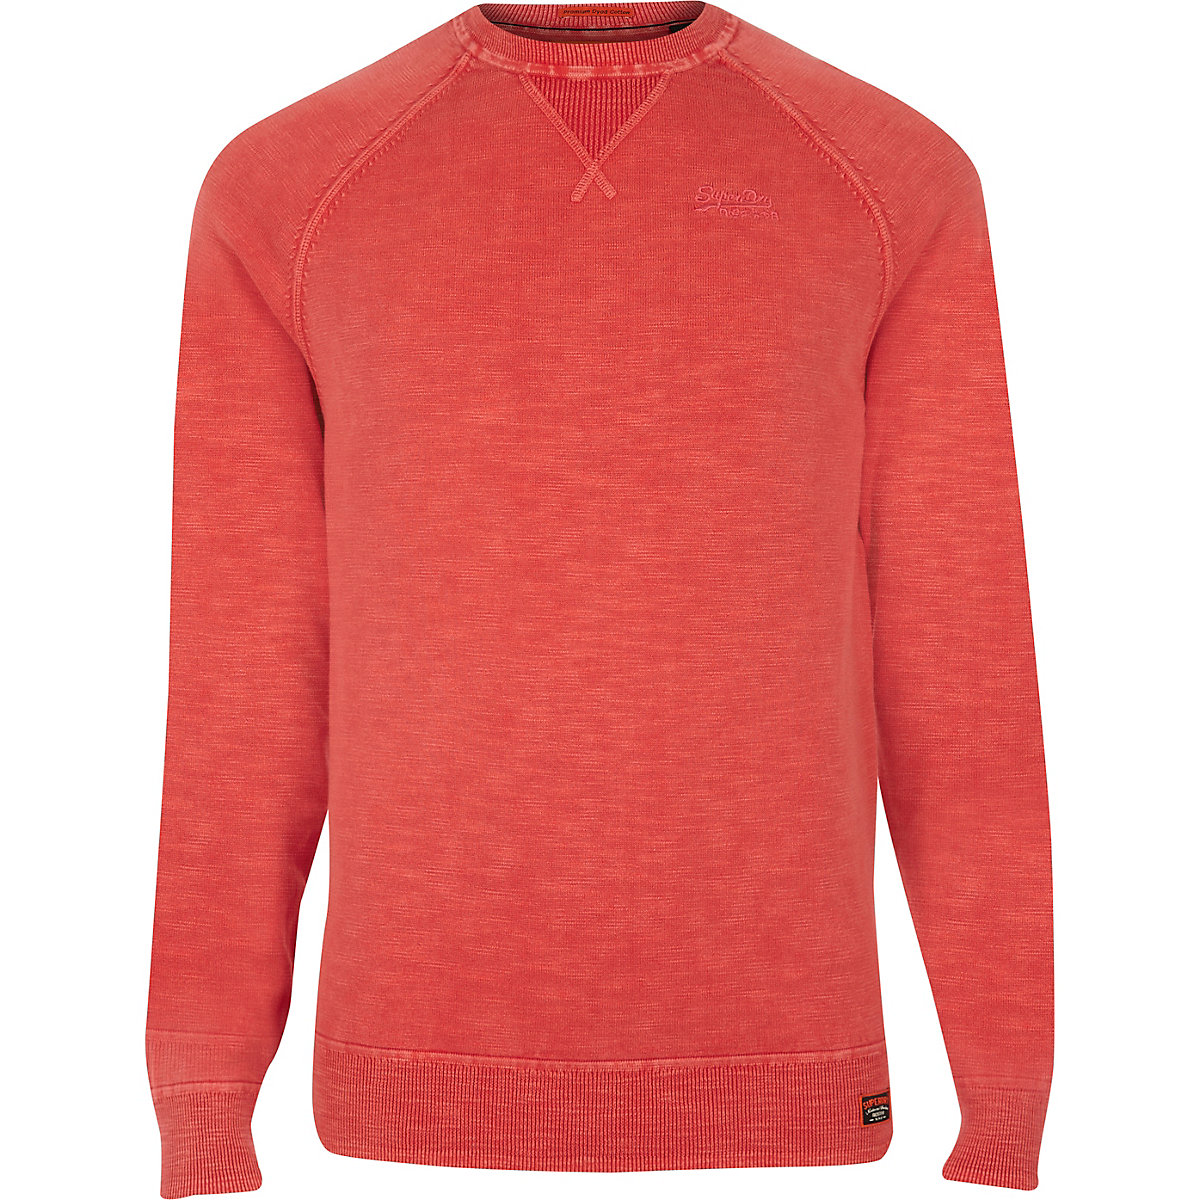 Superdry orange jumper